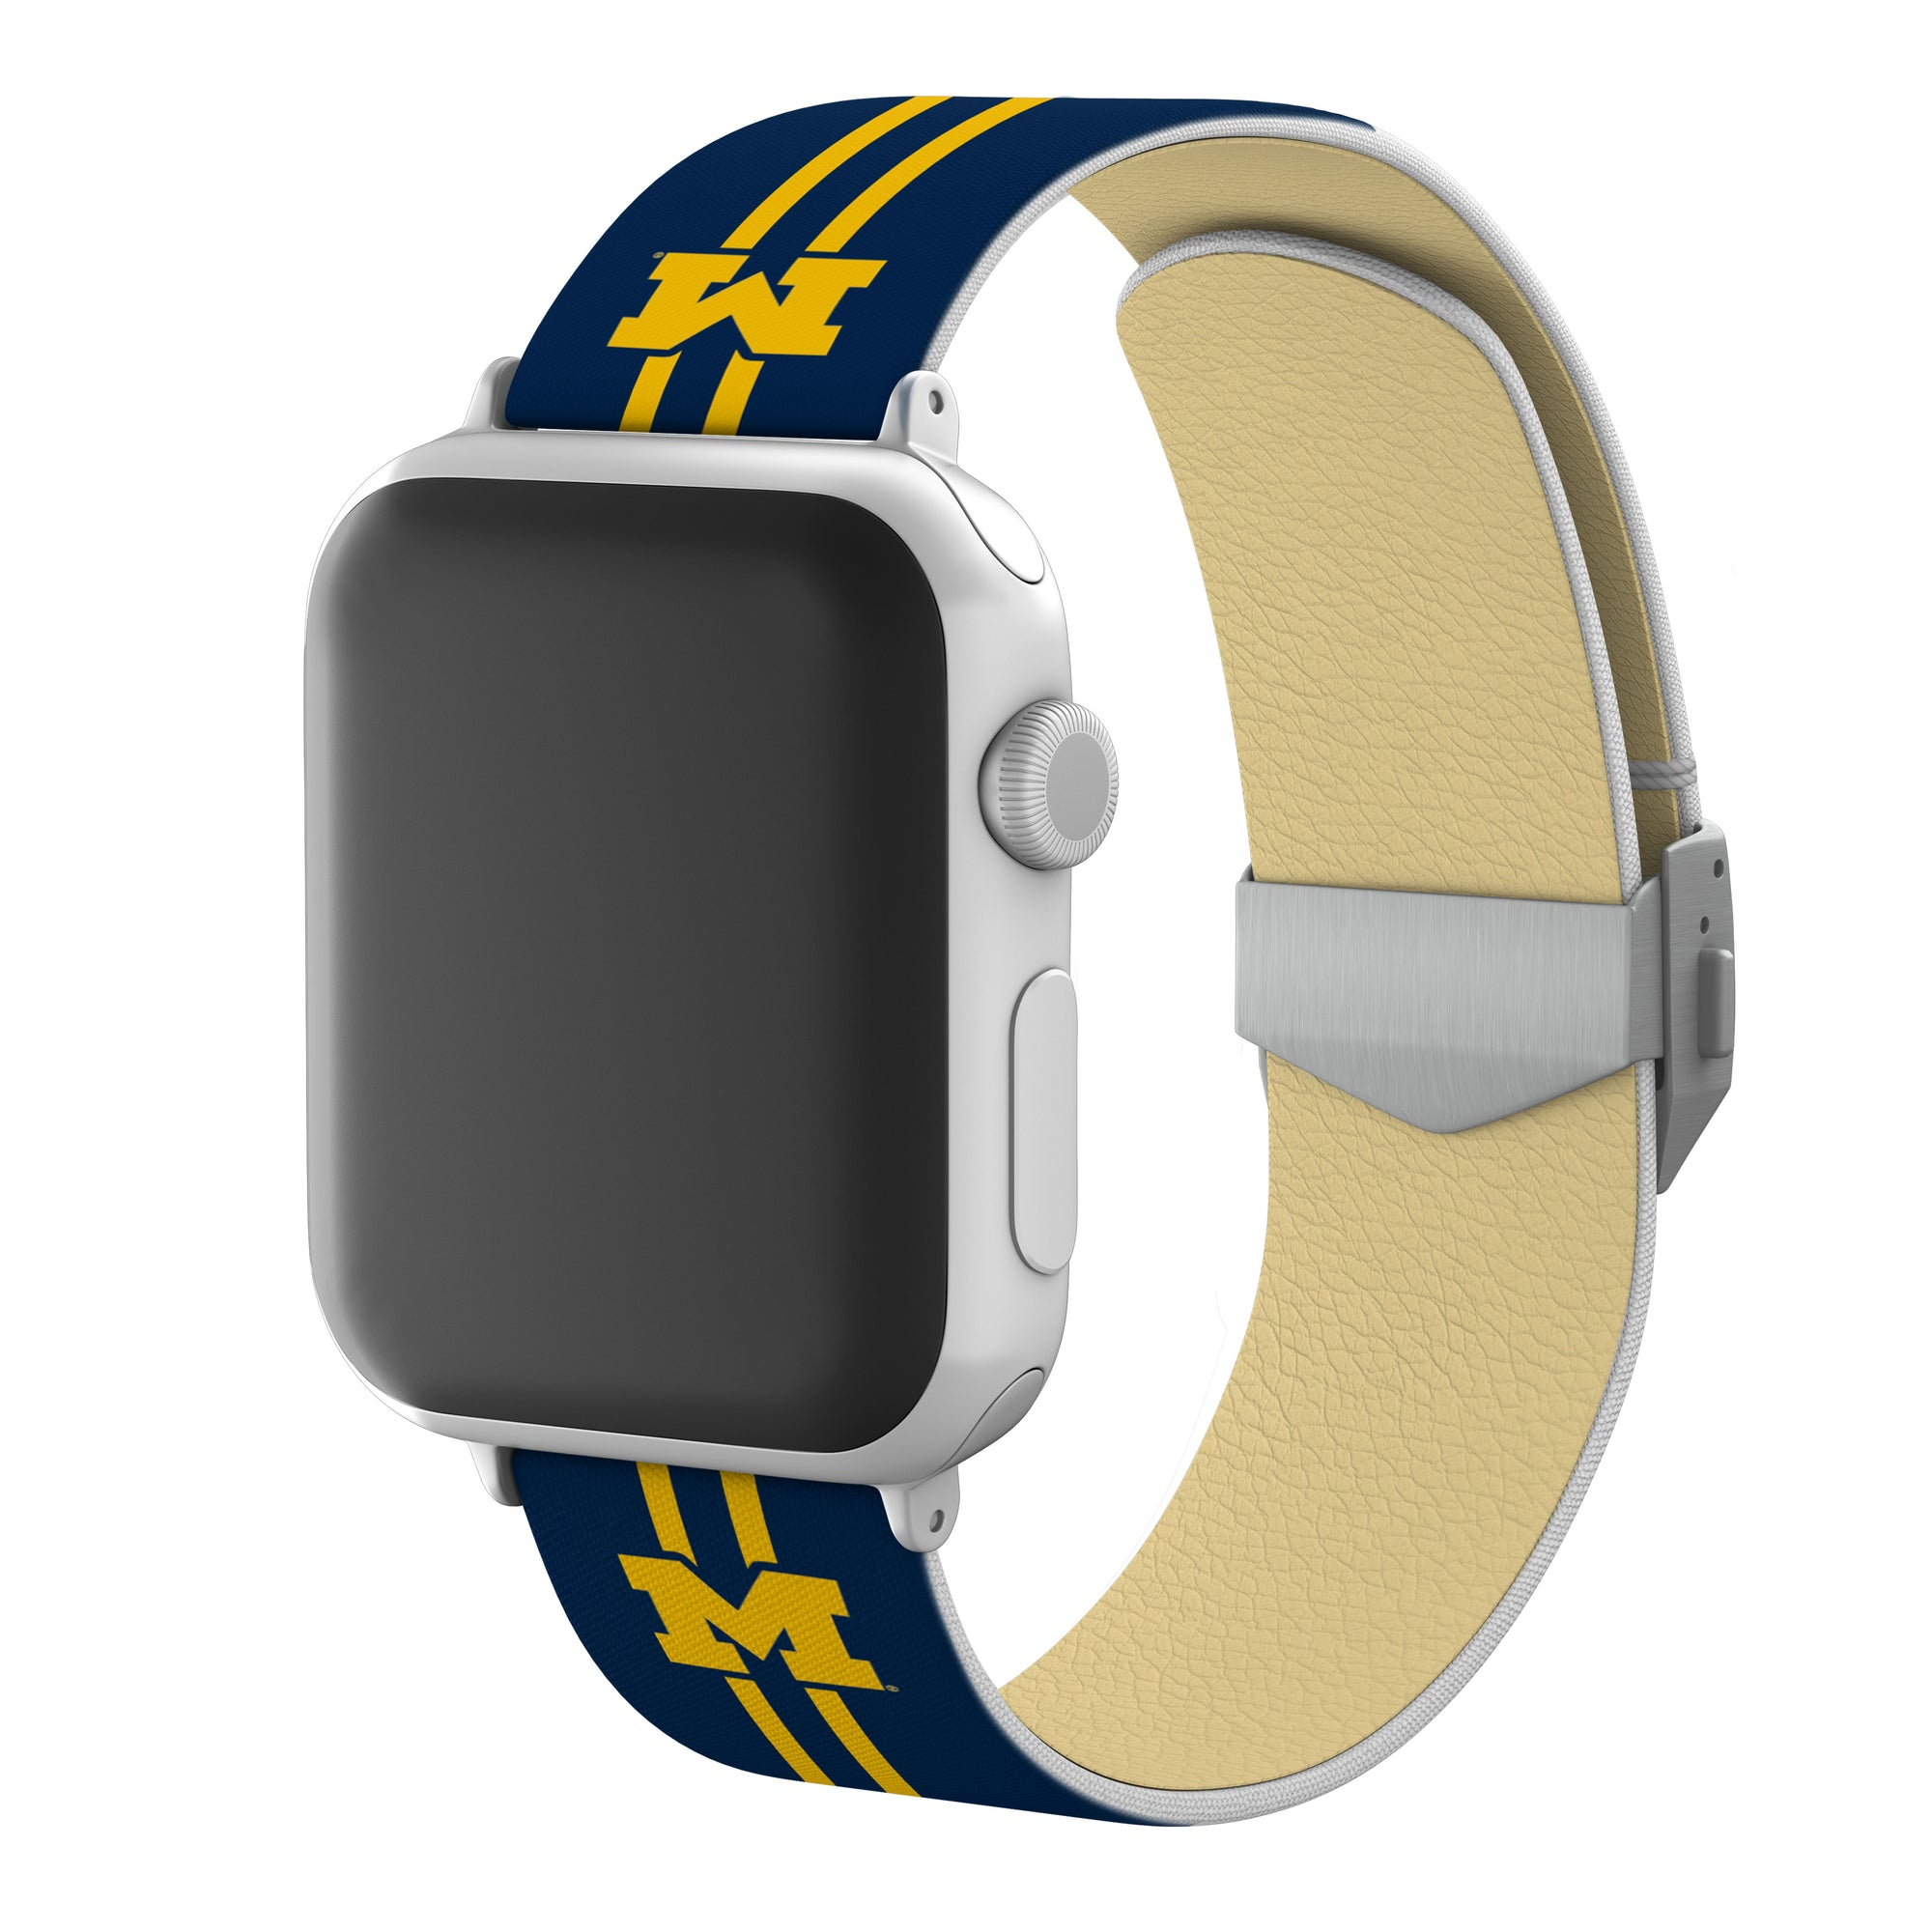 Michigan Wolverines Full Print Watch Band With Engraved Buckle - AffinityBands